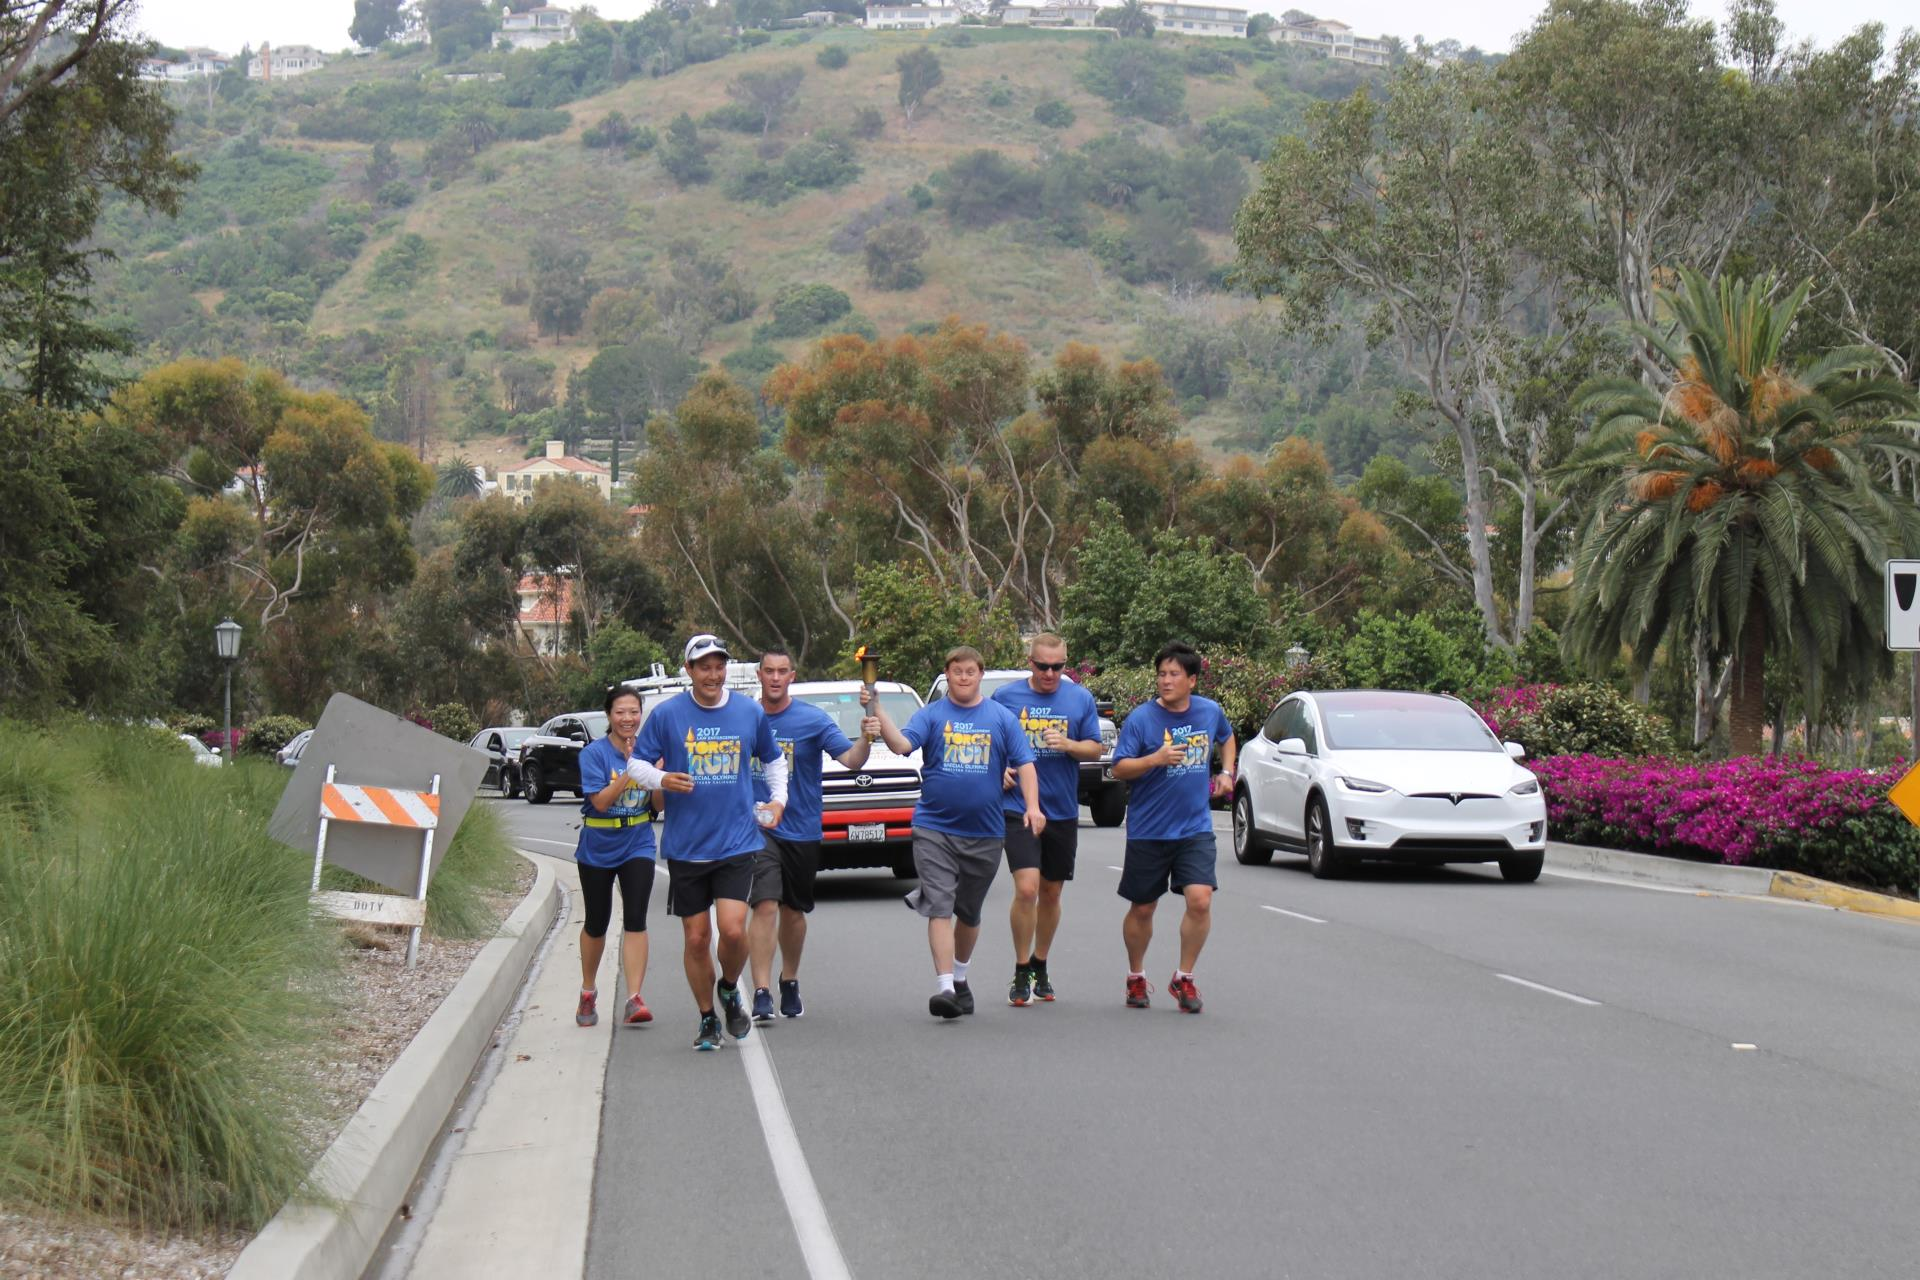 Runners coming up Palos Verdes Drive West to Palos Verdes Boulevard